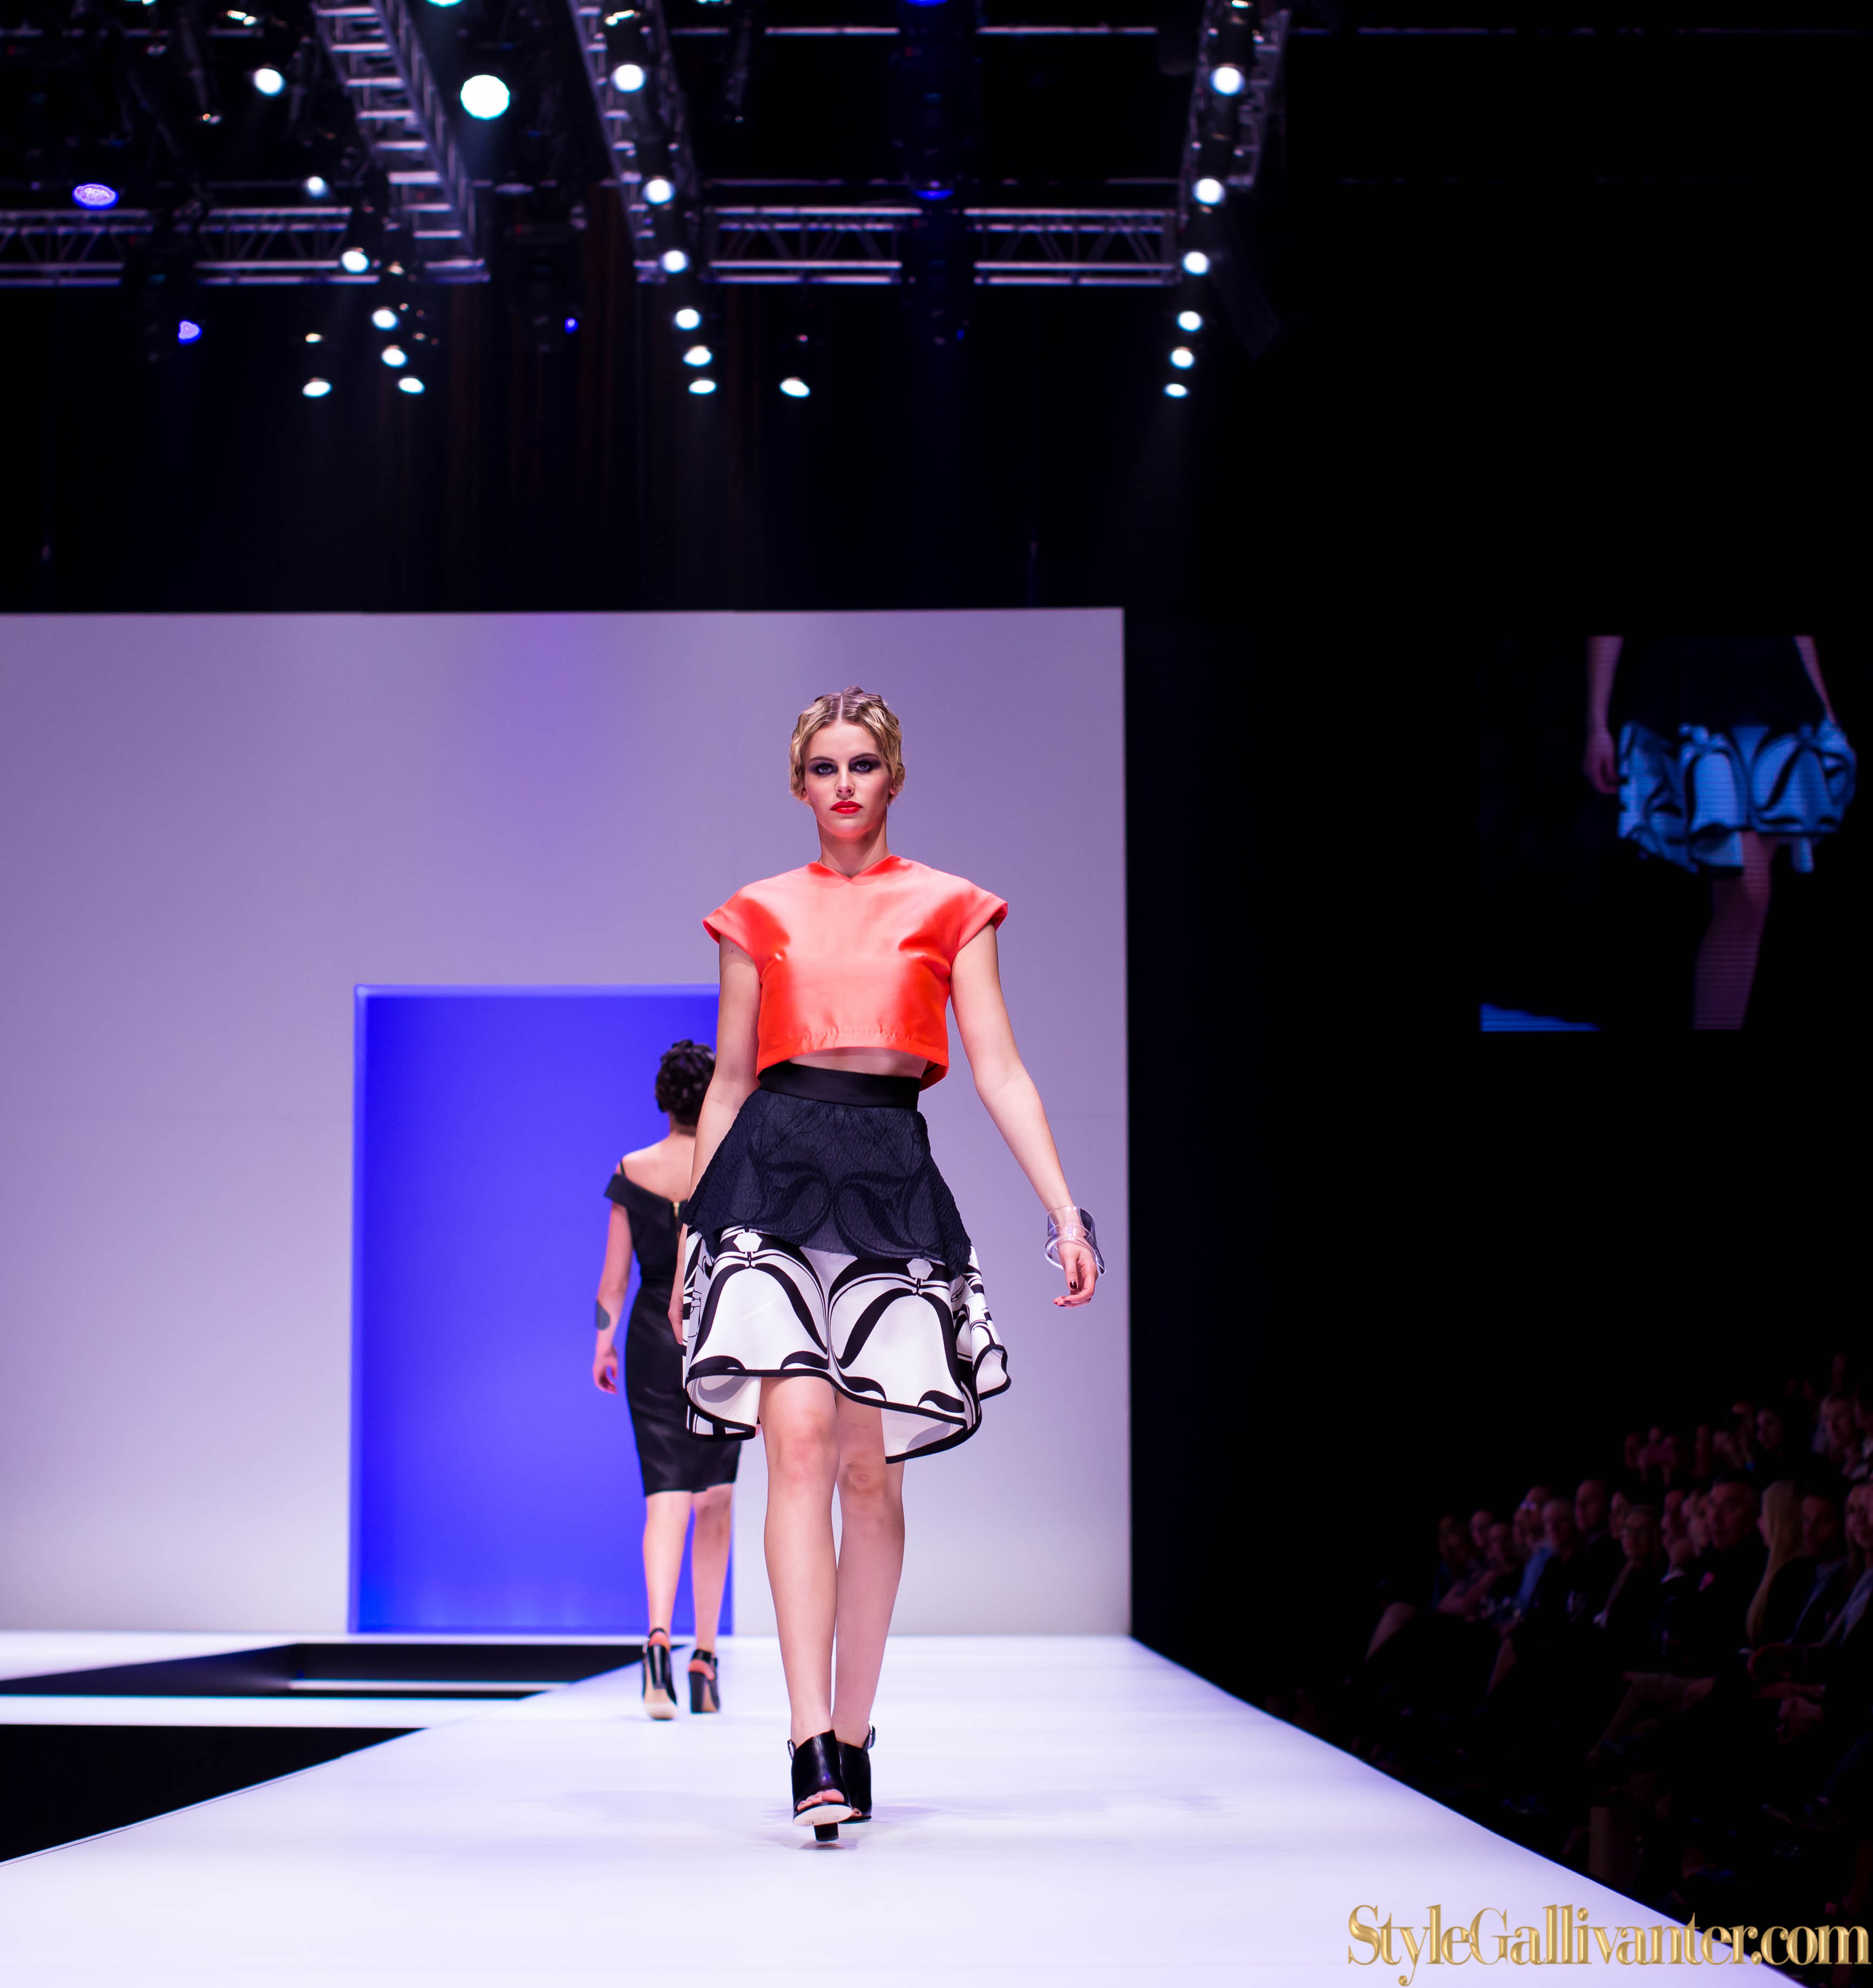 MSFW2014_MSFW14_MELBOURNE-SPRING-FASHION-WEEK_AUSTRALIAN-FASHION-WEEKS_MSFW14-INFLUENCERS_MSFW-INFLUENCERS-7